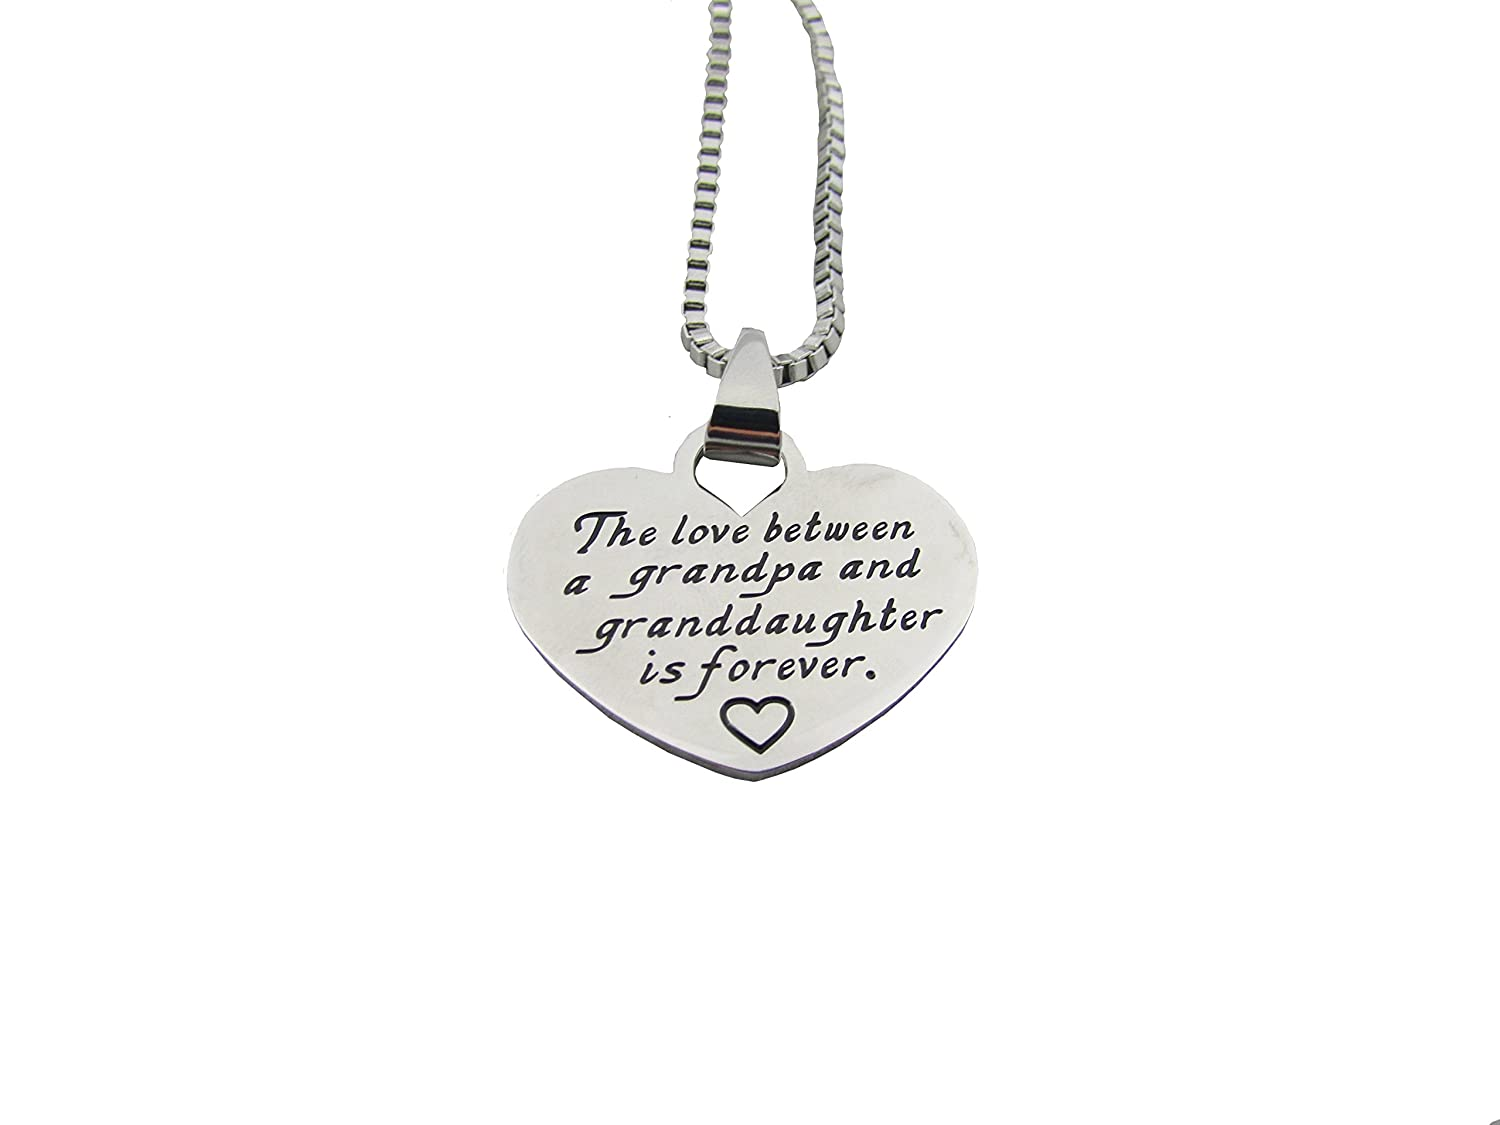 'The Love Between a Grandpa and Granddaughter...' Heart Pendant Necklace